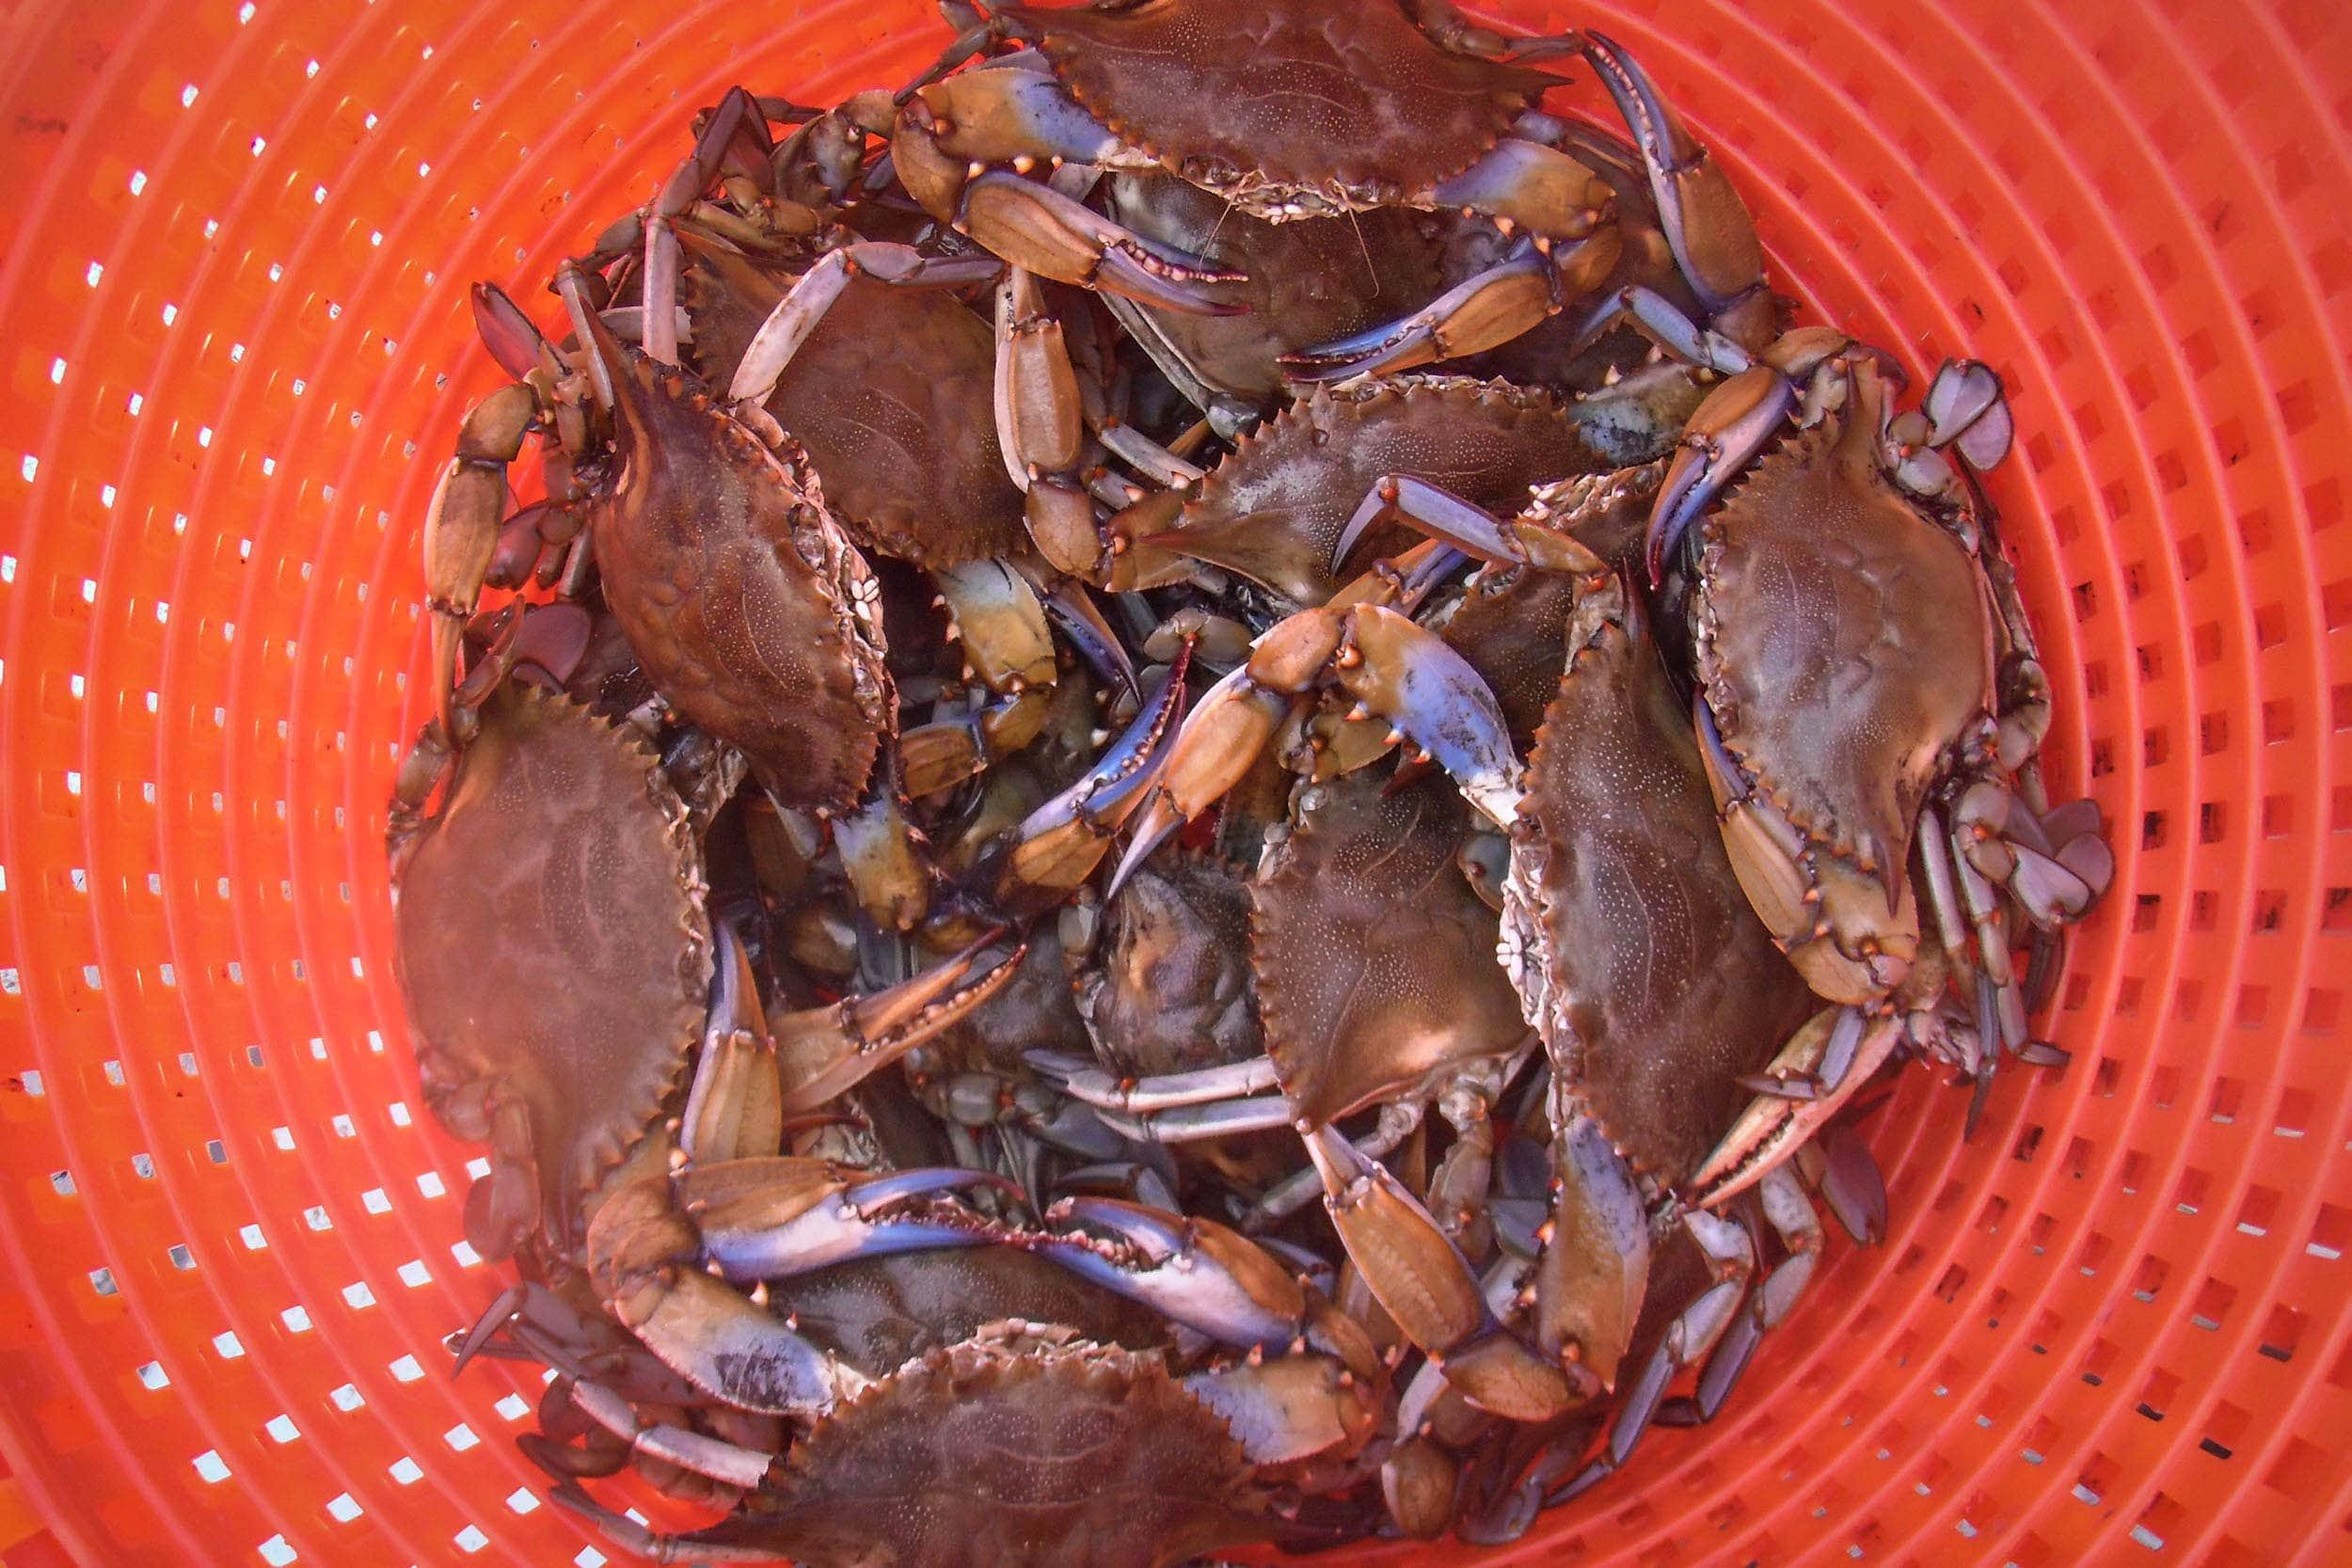 Blue crabs held in a basket after measurement, prior to release